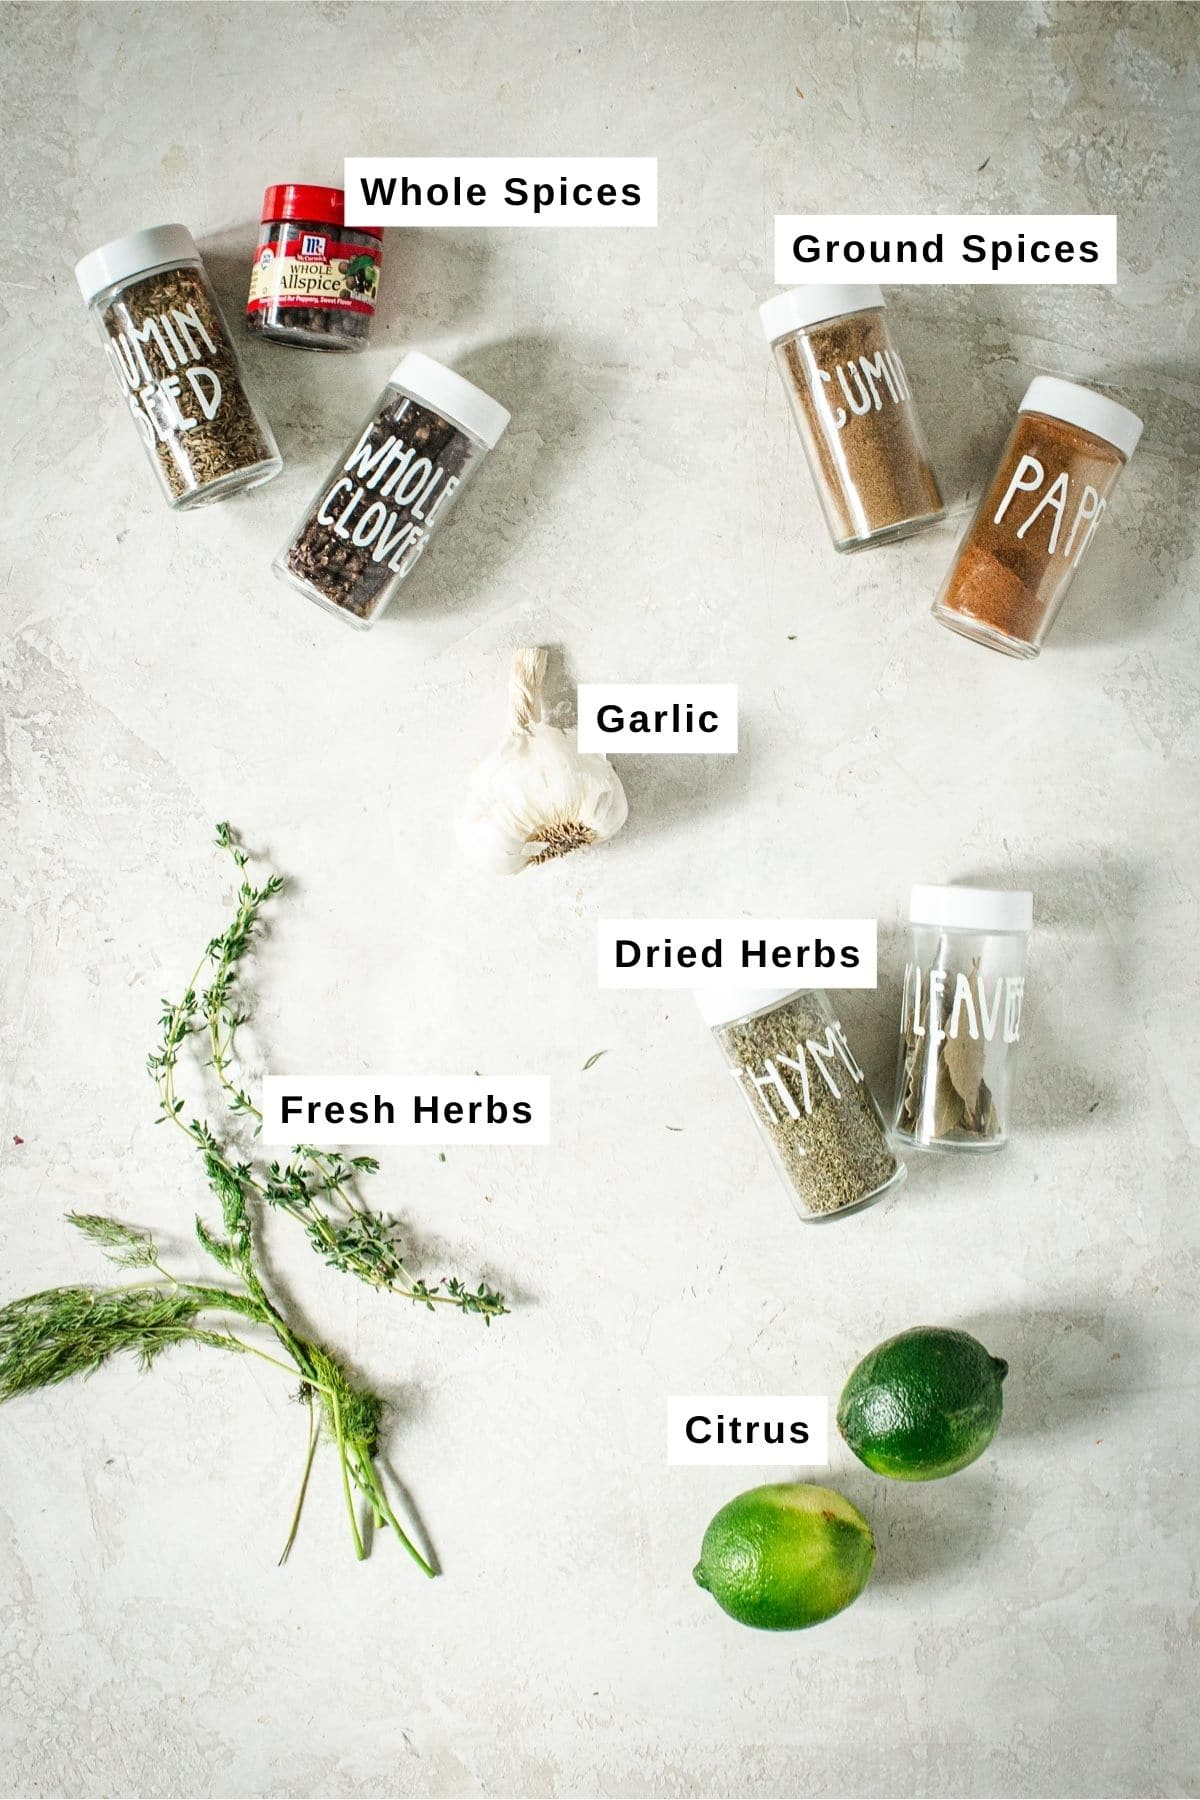 Spices and herbs in jars and fresh for pickled vegetables.